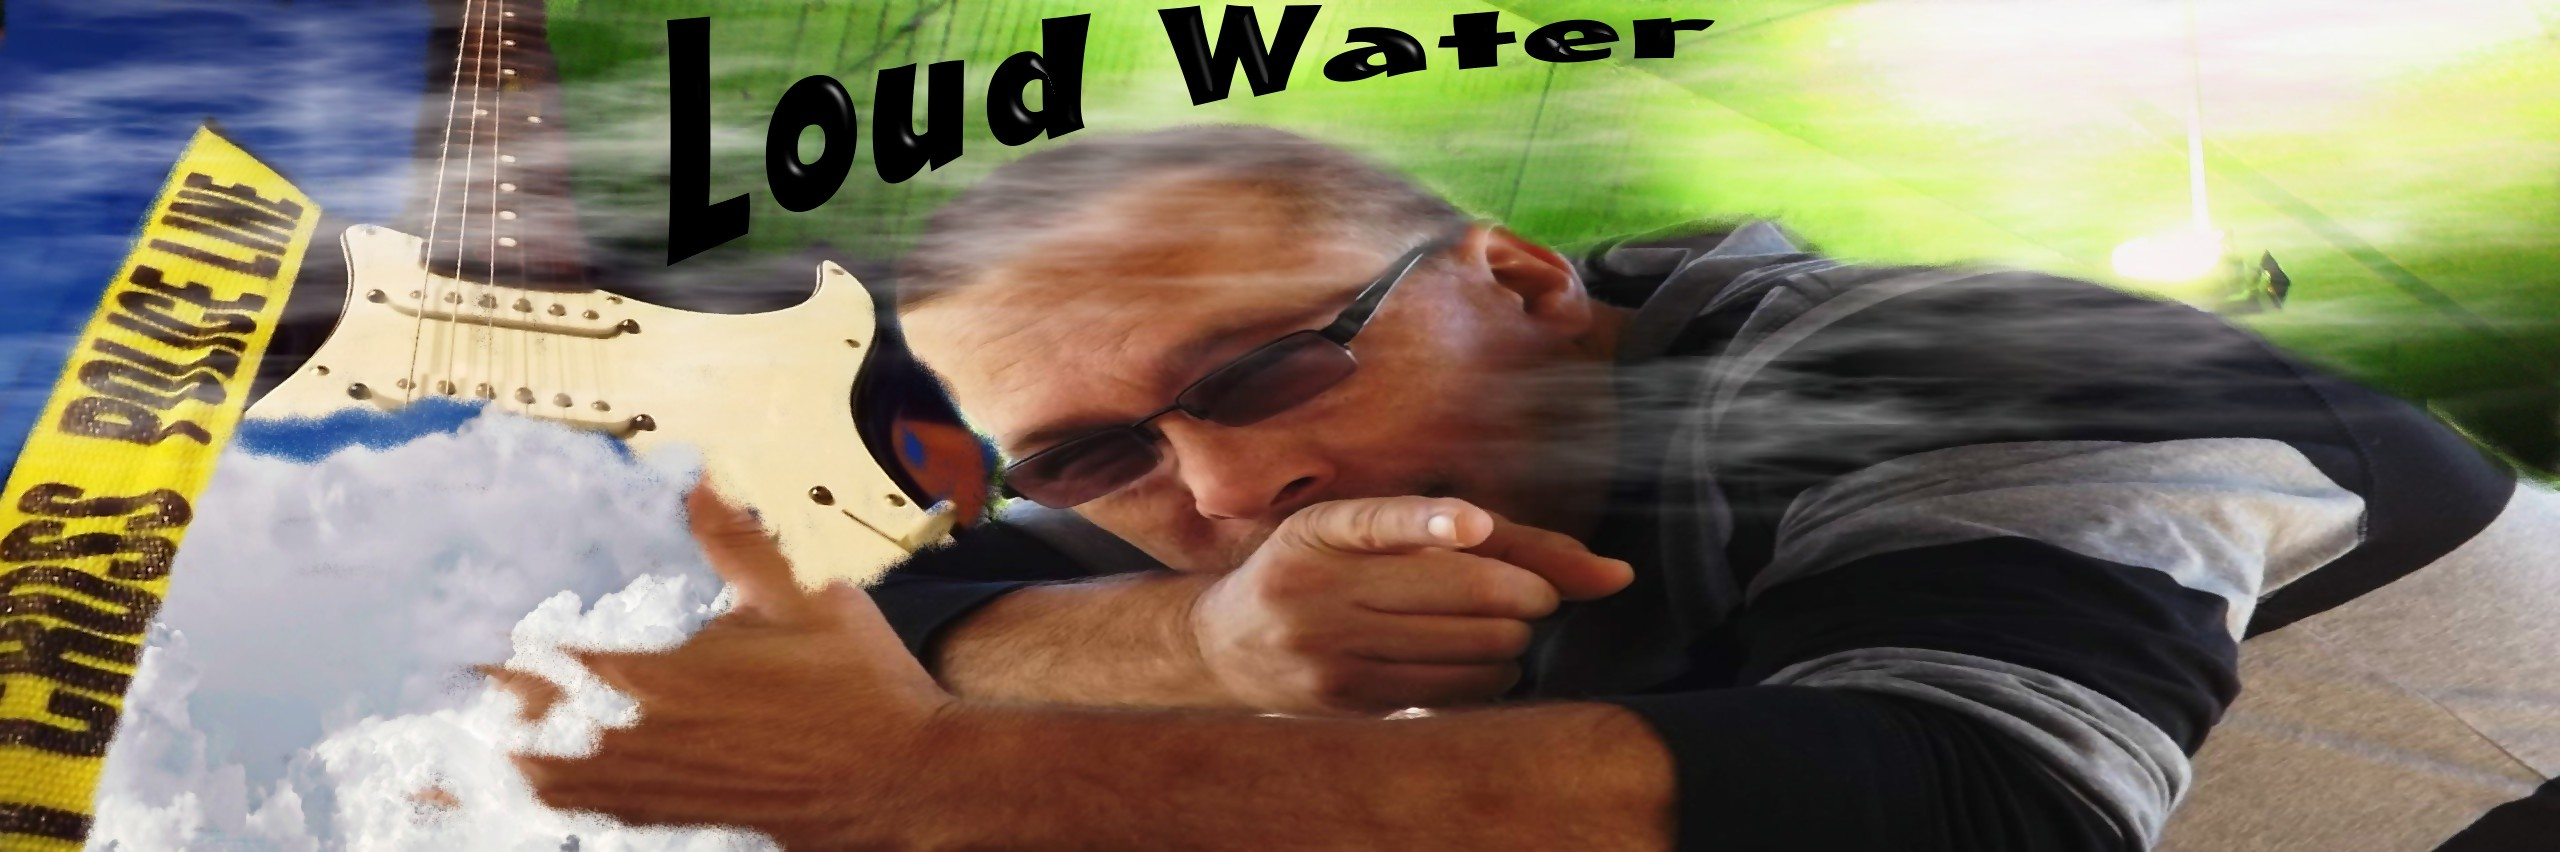 loudwater